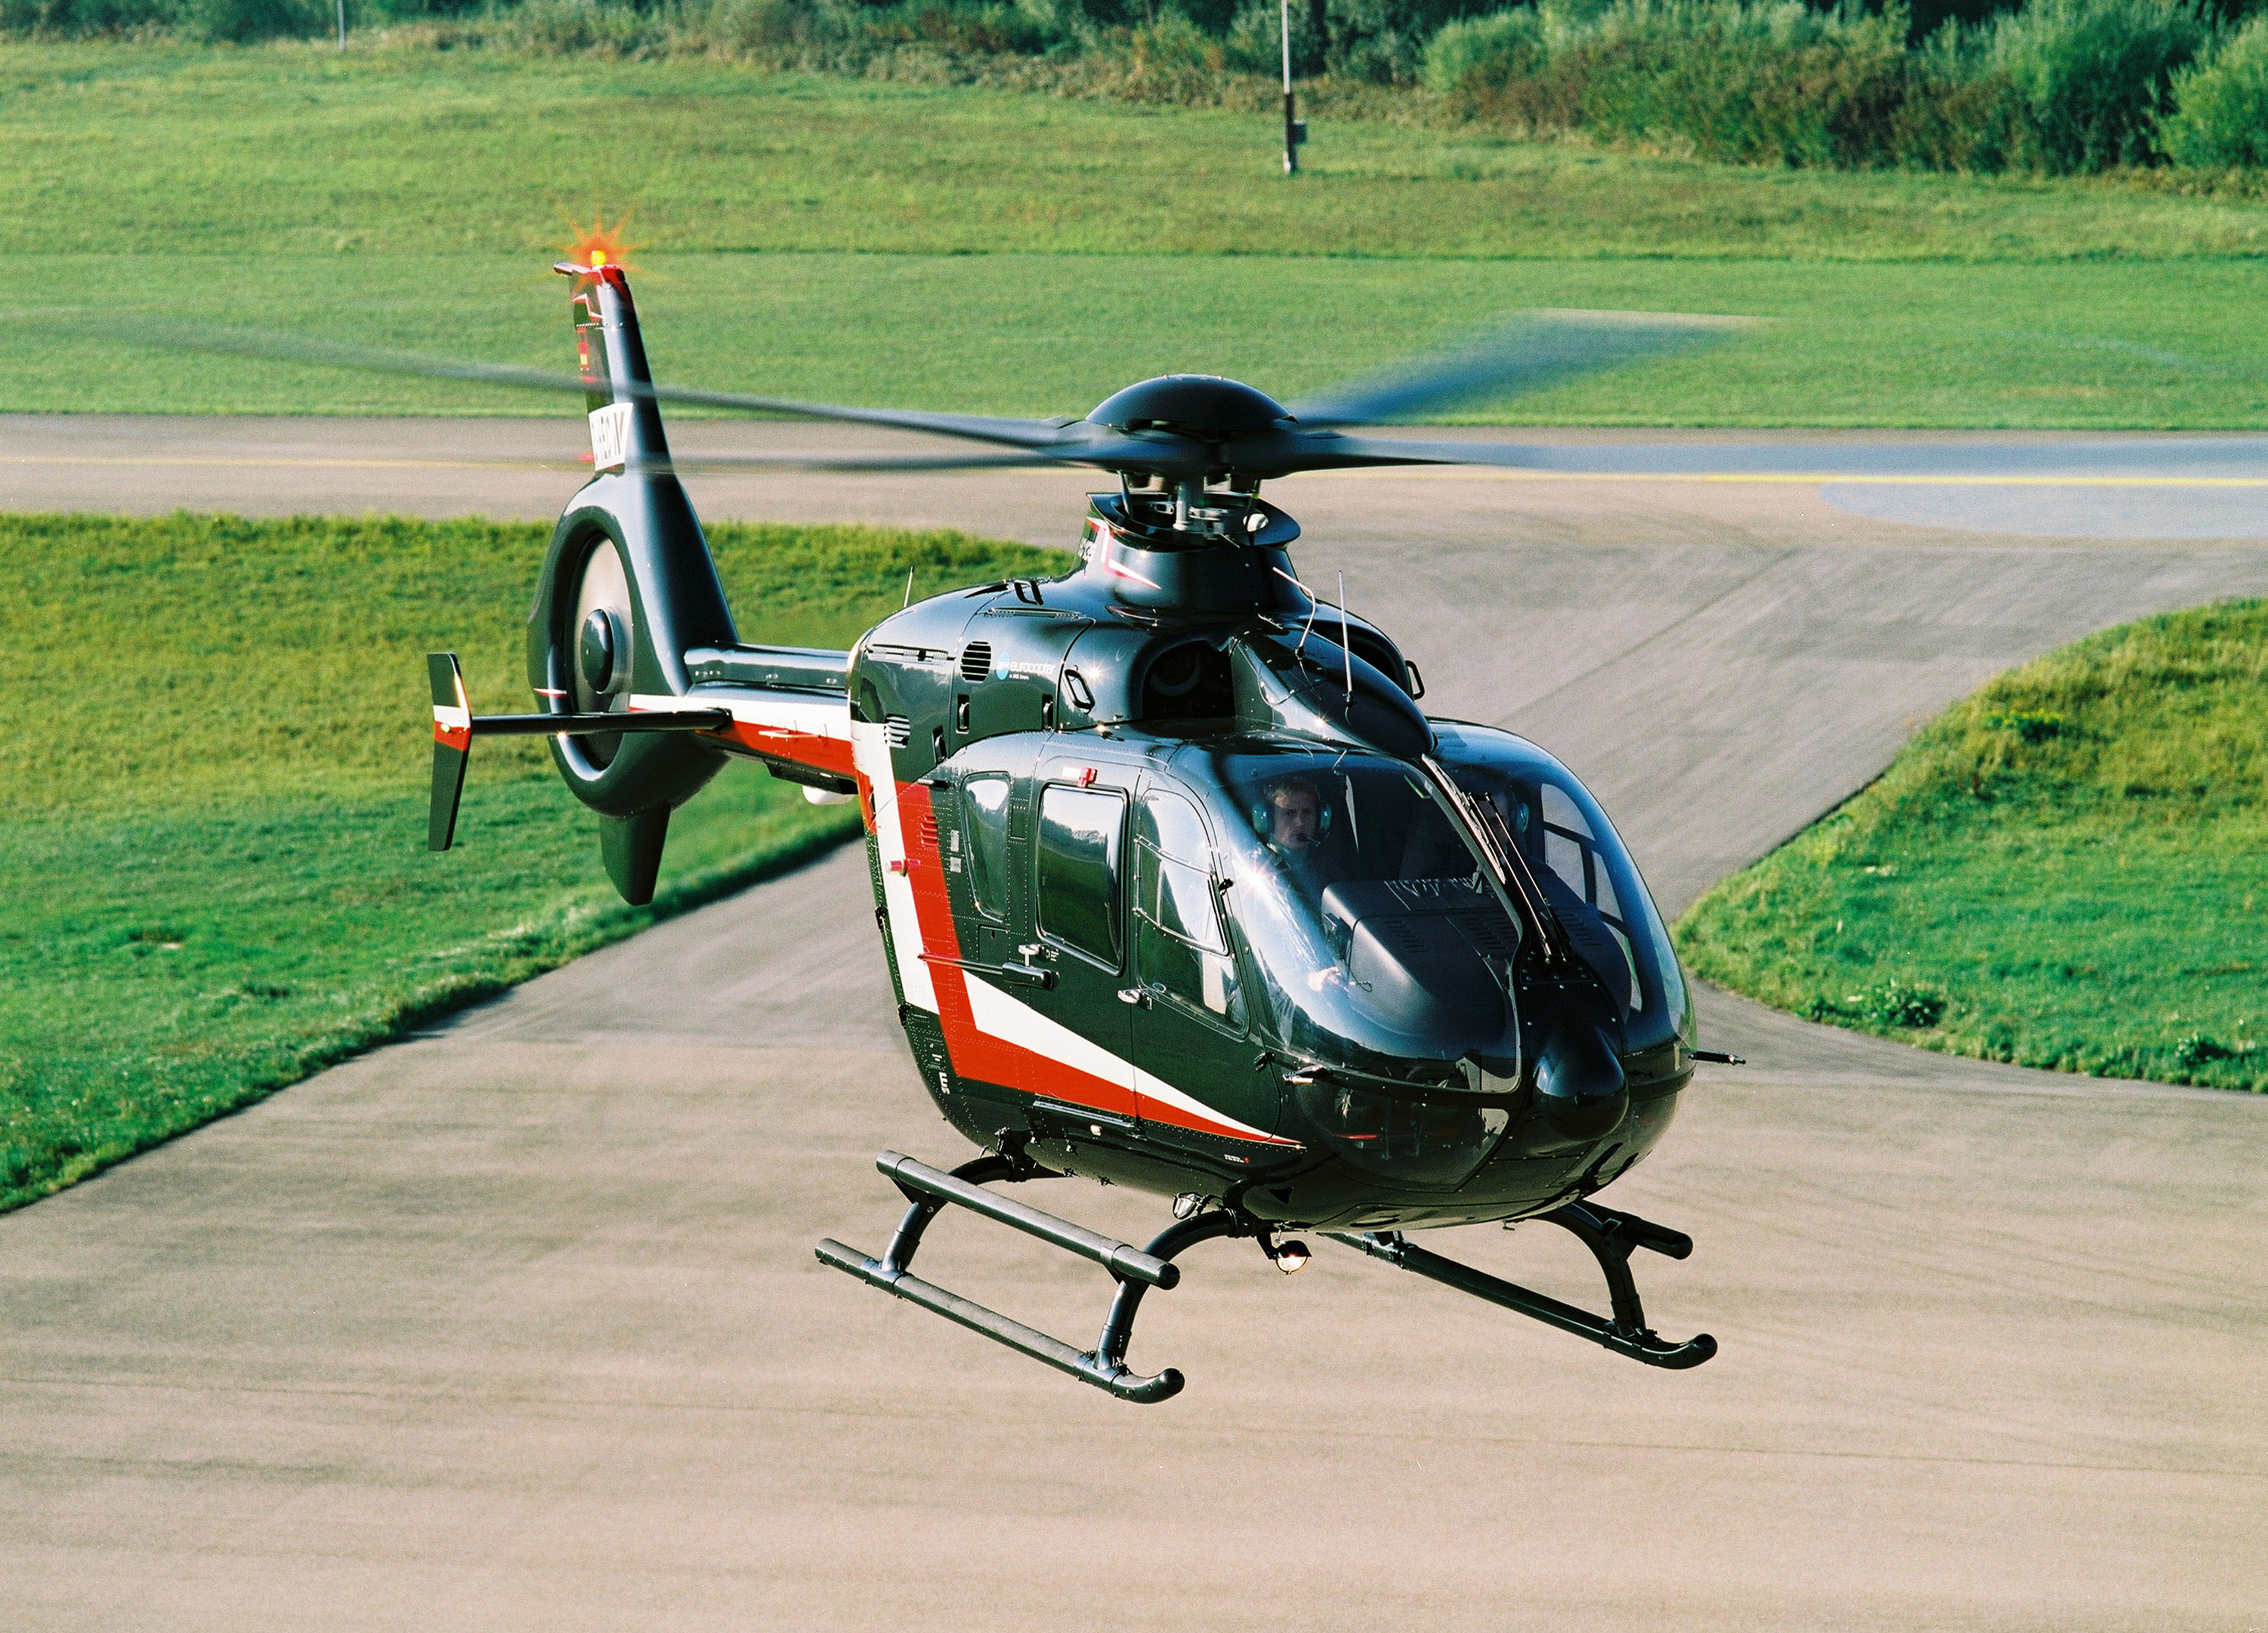 Constant innovation through EC135 (seen here) and H135 models has kept the series at the top of its game. Image: Airbus